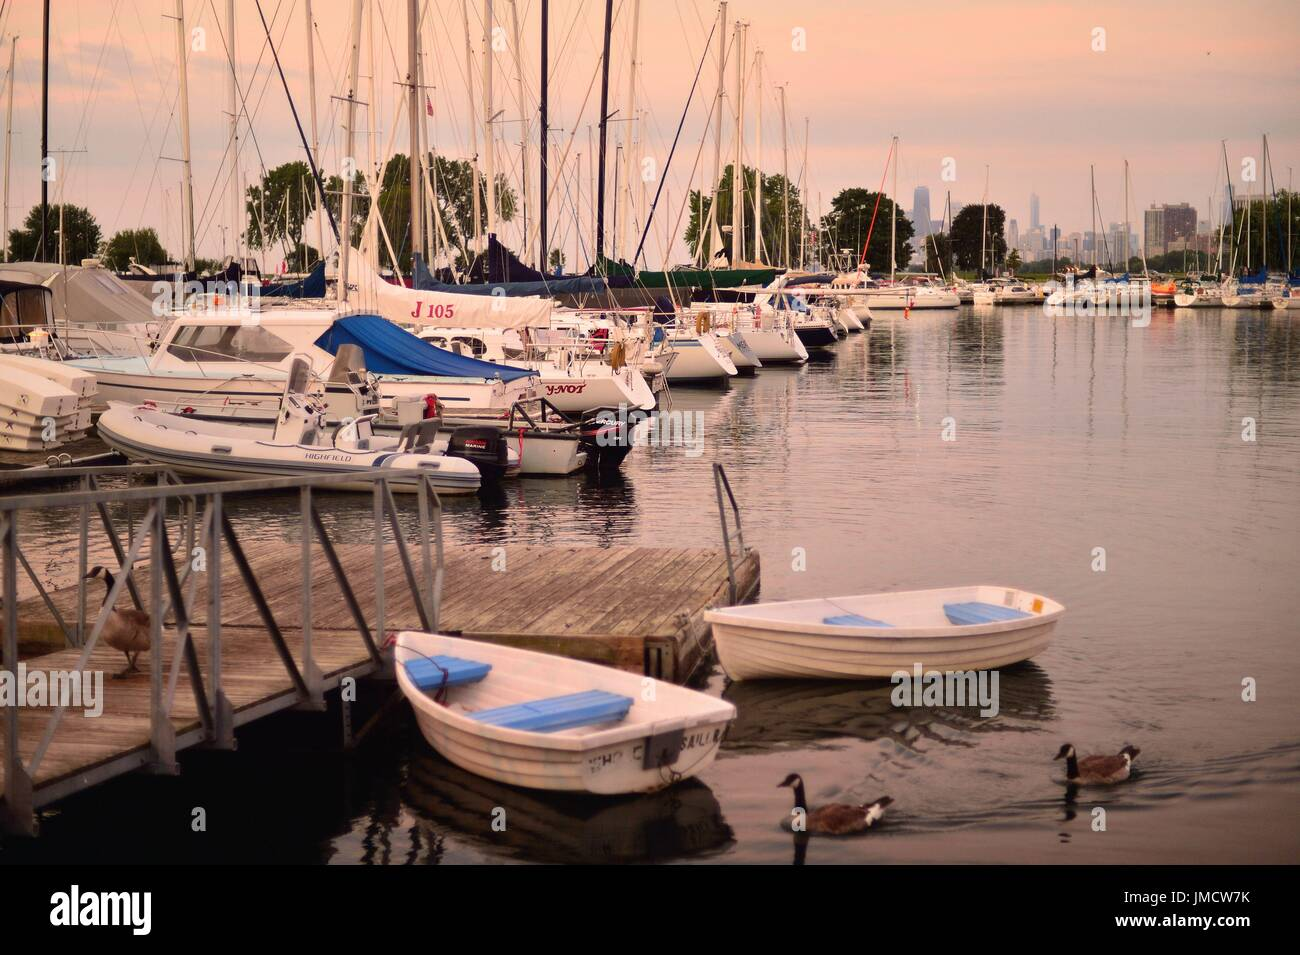 Chicago, Illinois, USA. Sailboats and pleasure craft in berths within Chicago's Montrose Harbor prior to sunrise on a summer morning. - Stock Image